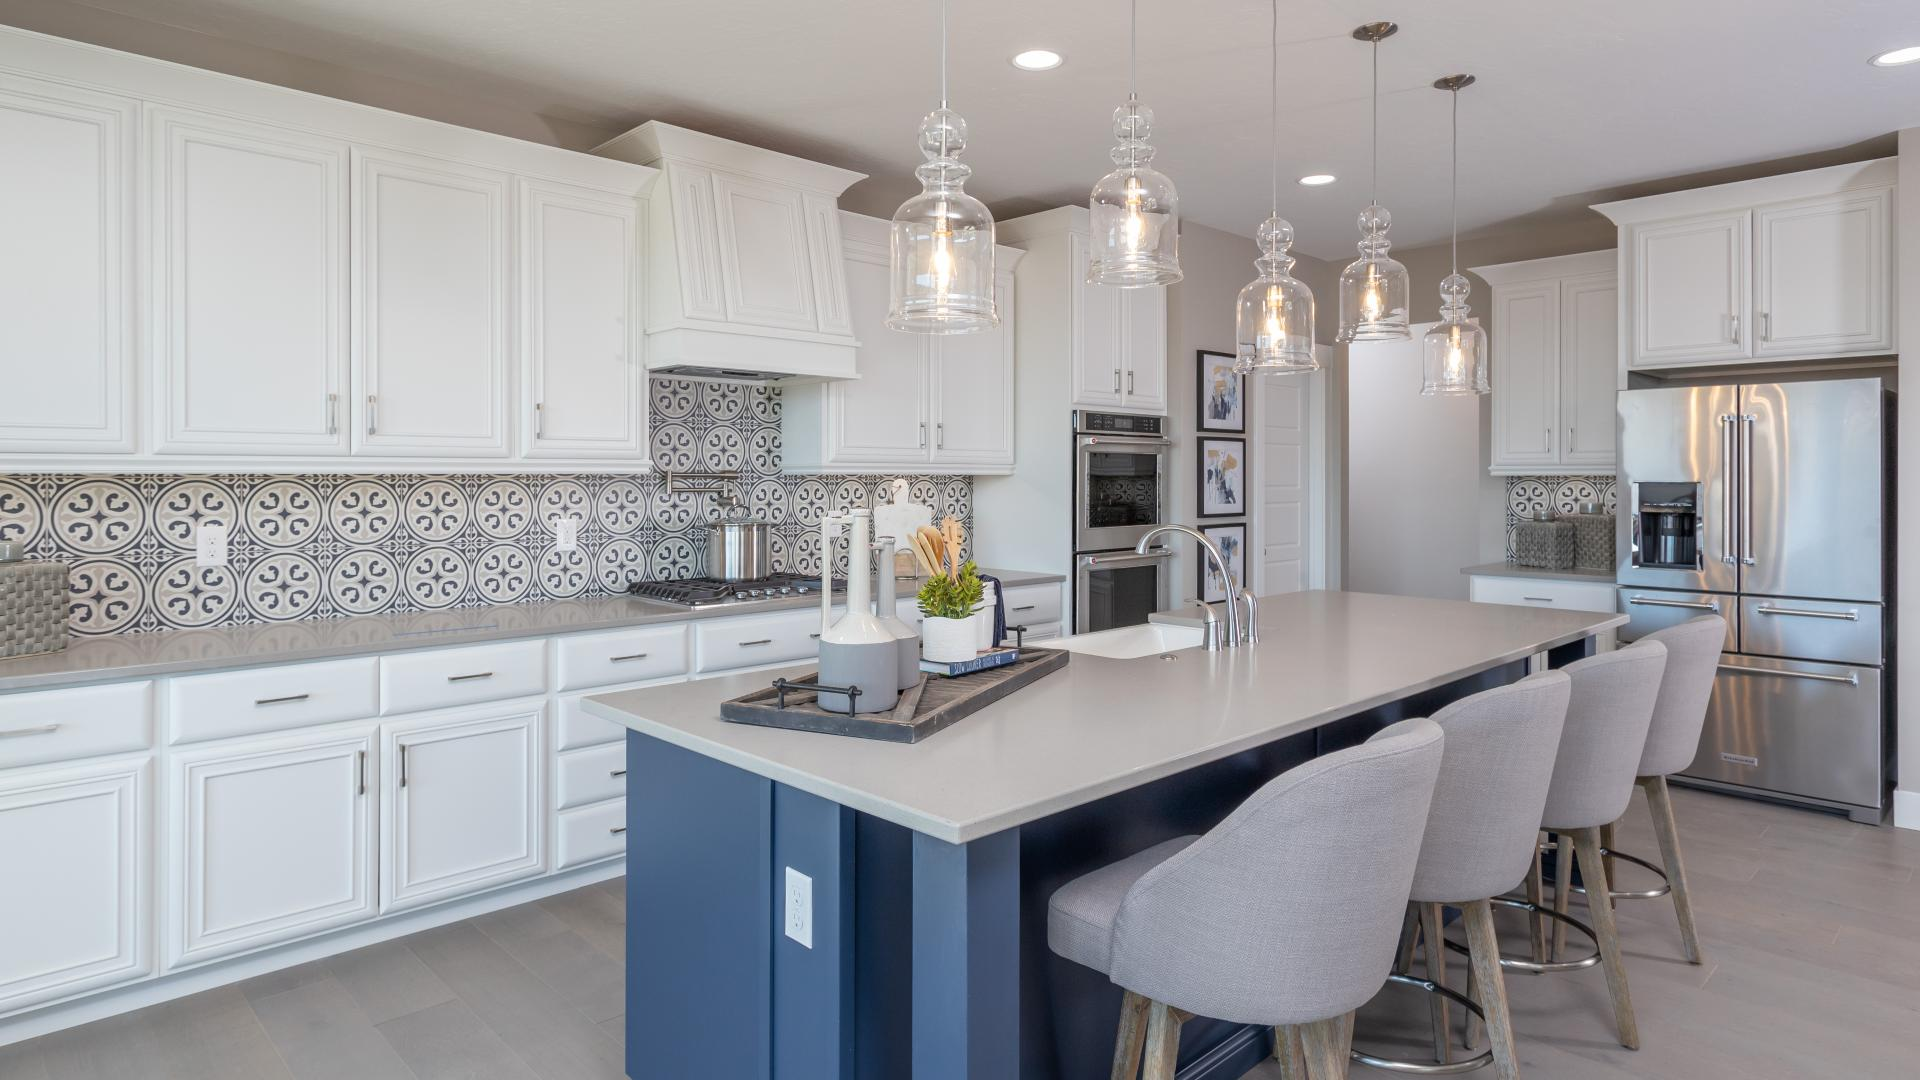 Gourmet kitchens with extra counterspace for entertaining